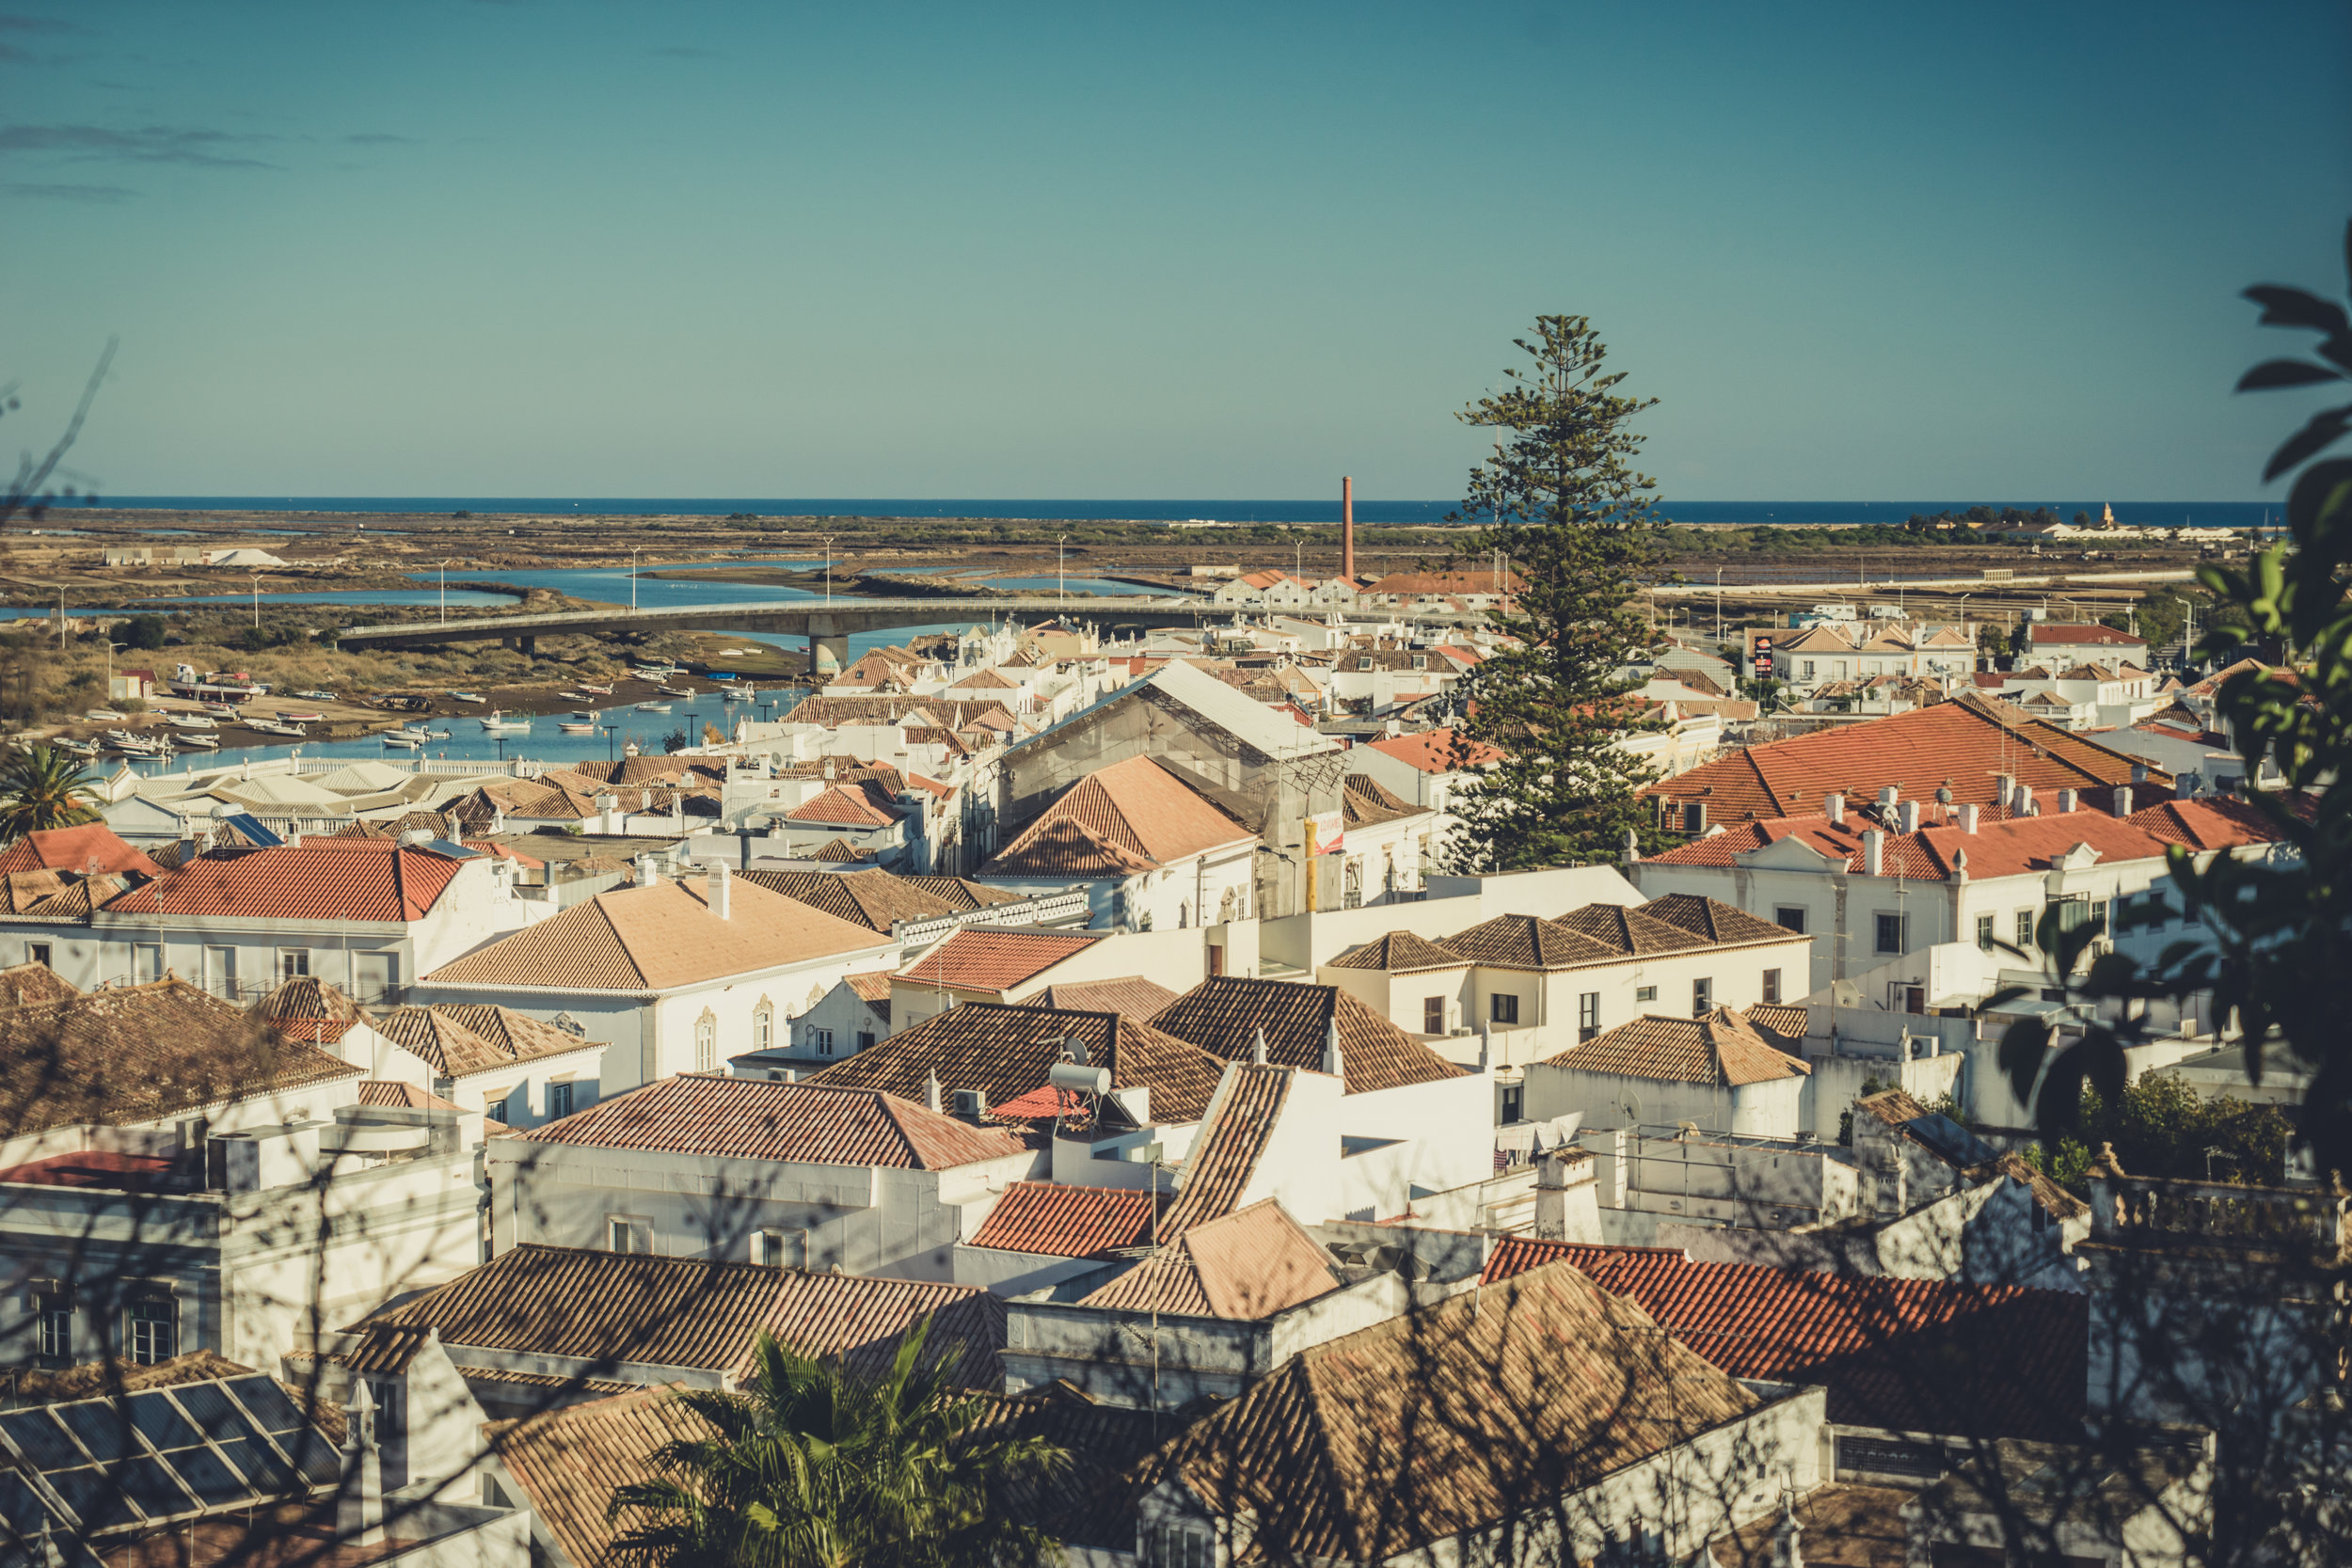 Tavira Roman Bridge. Old town Tavira. Street scene in Tavira. Algarve. over looking the town.JPG